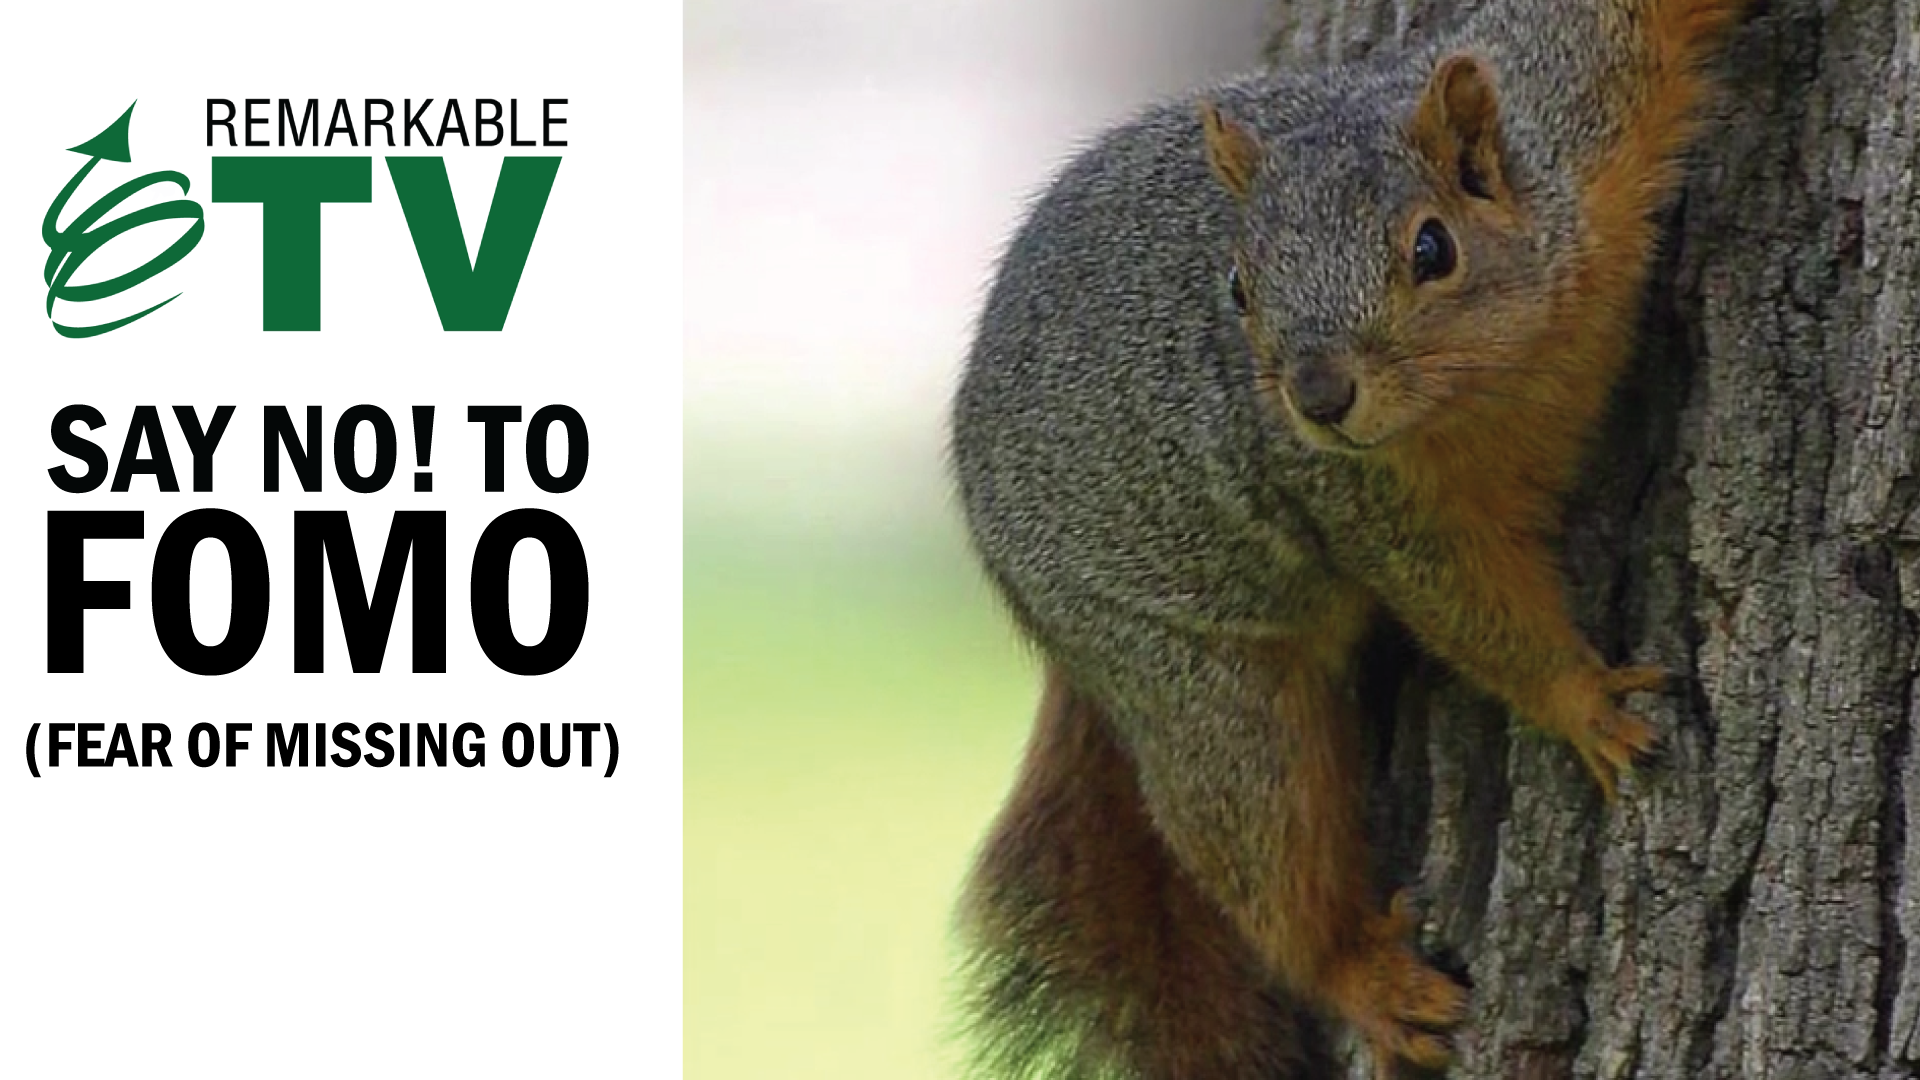 Say No! to FOMO (Fear of Missing Out) - Remarkable TV with Kevin Eikenberry